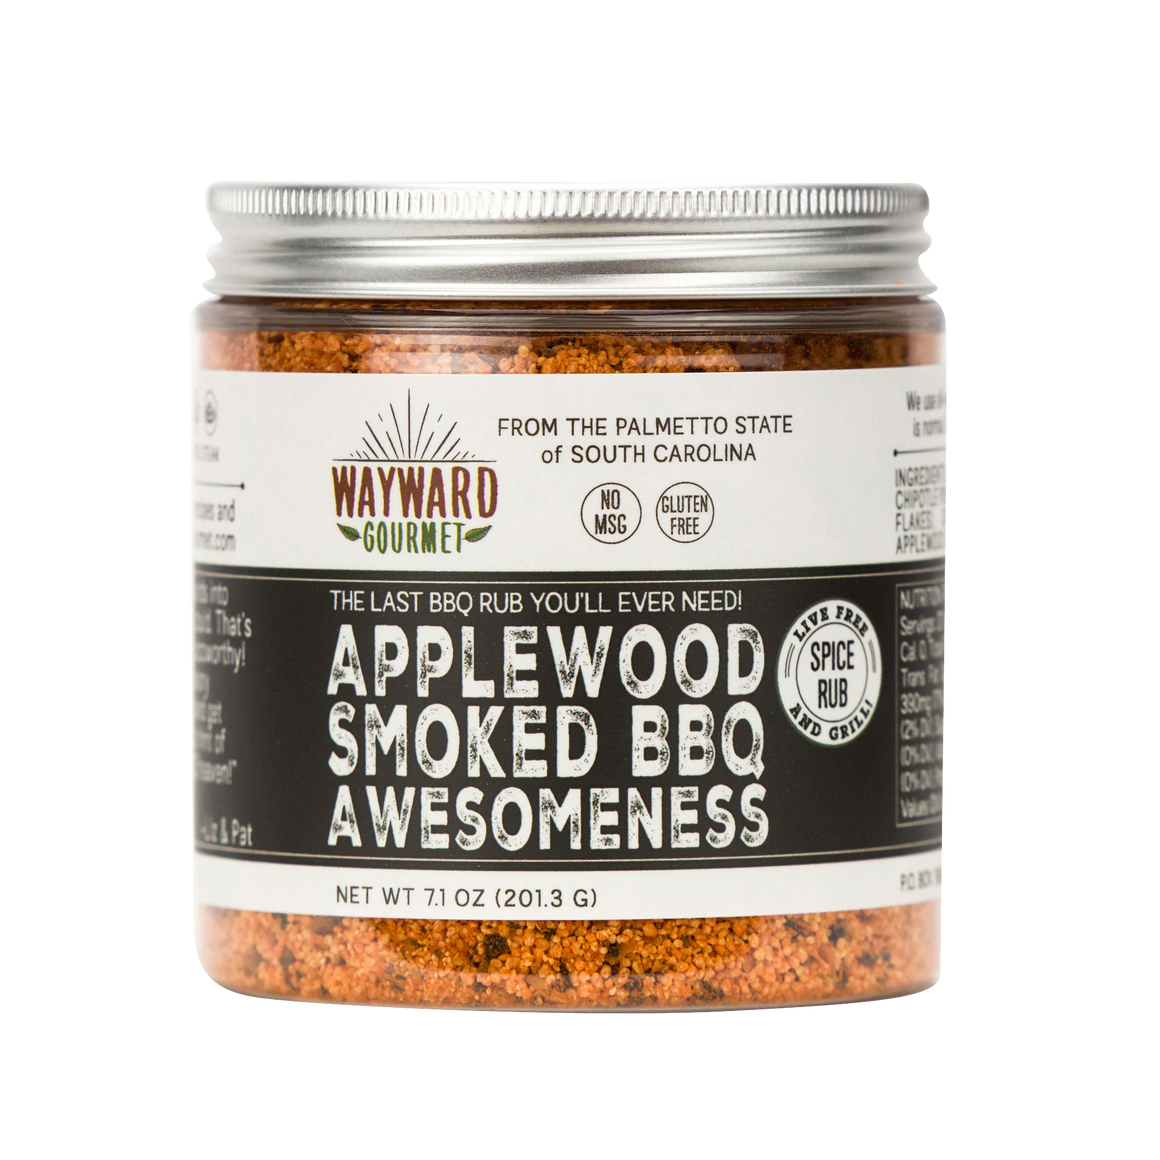 Applewood Smoked BBQ Awesomeness